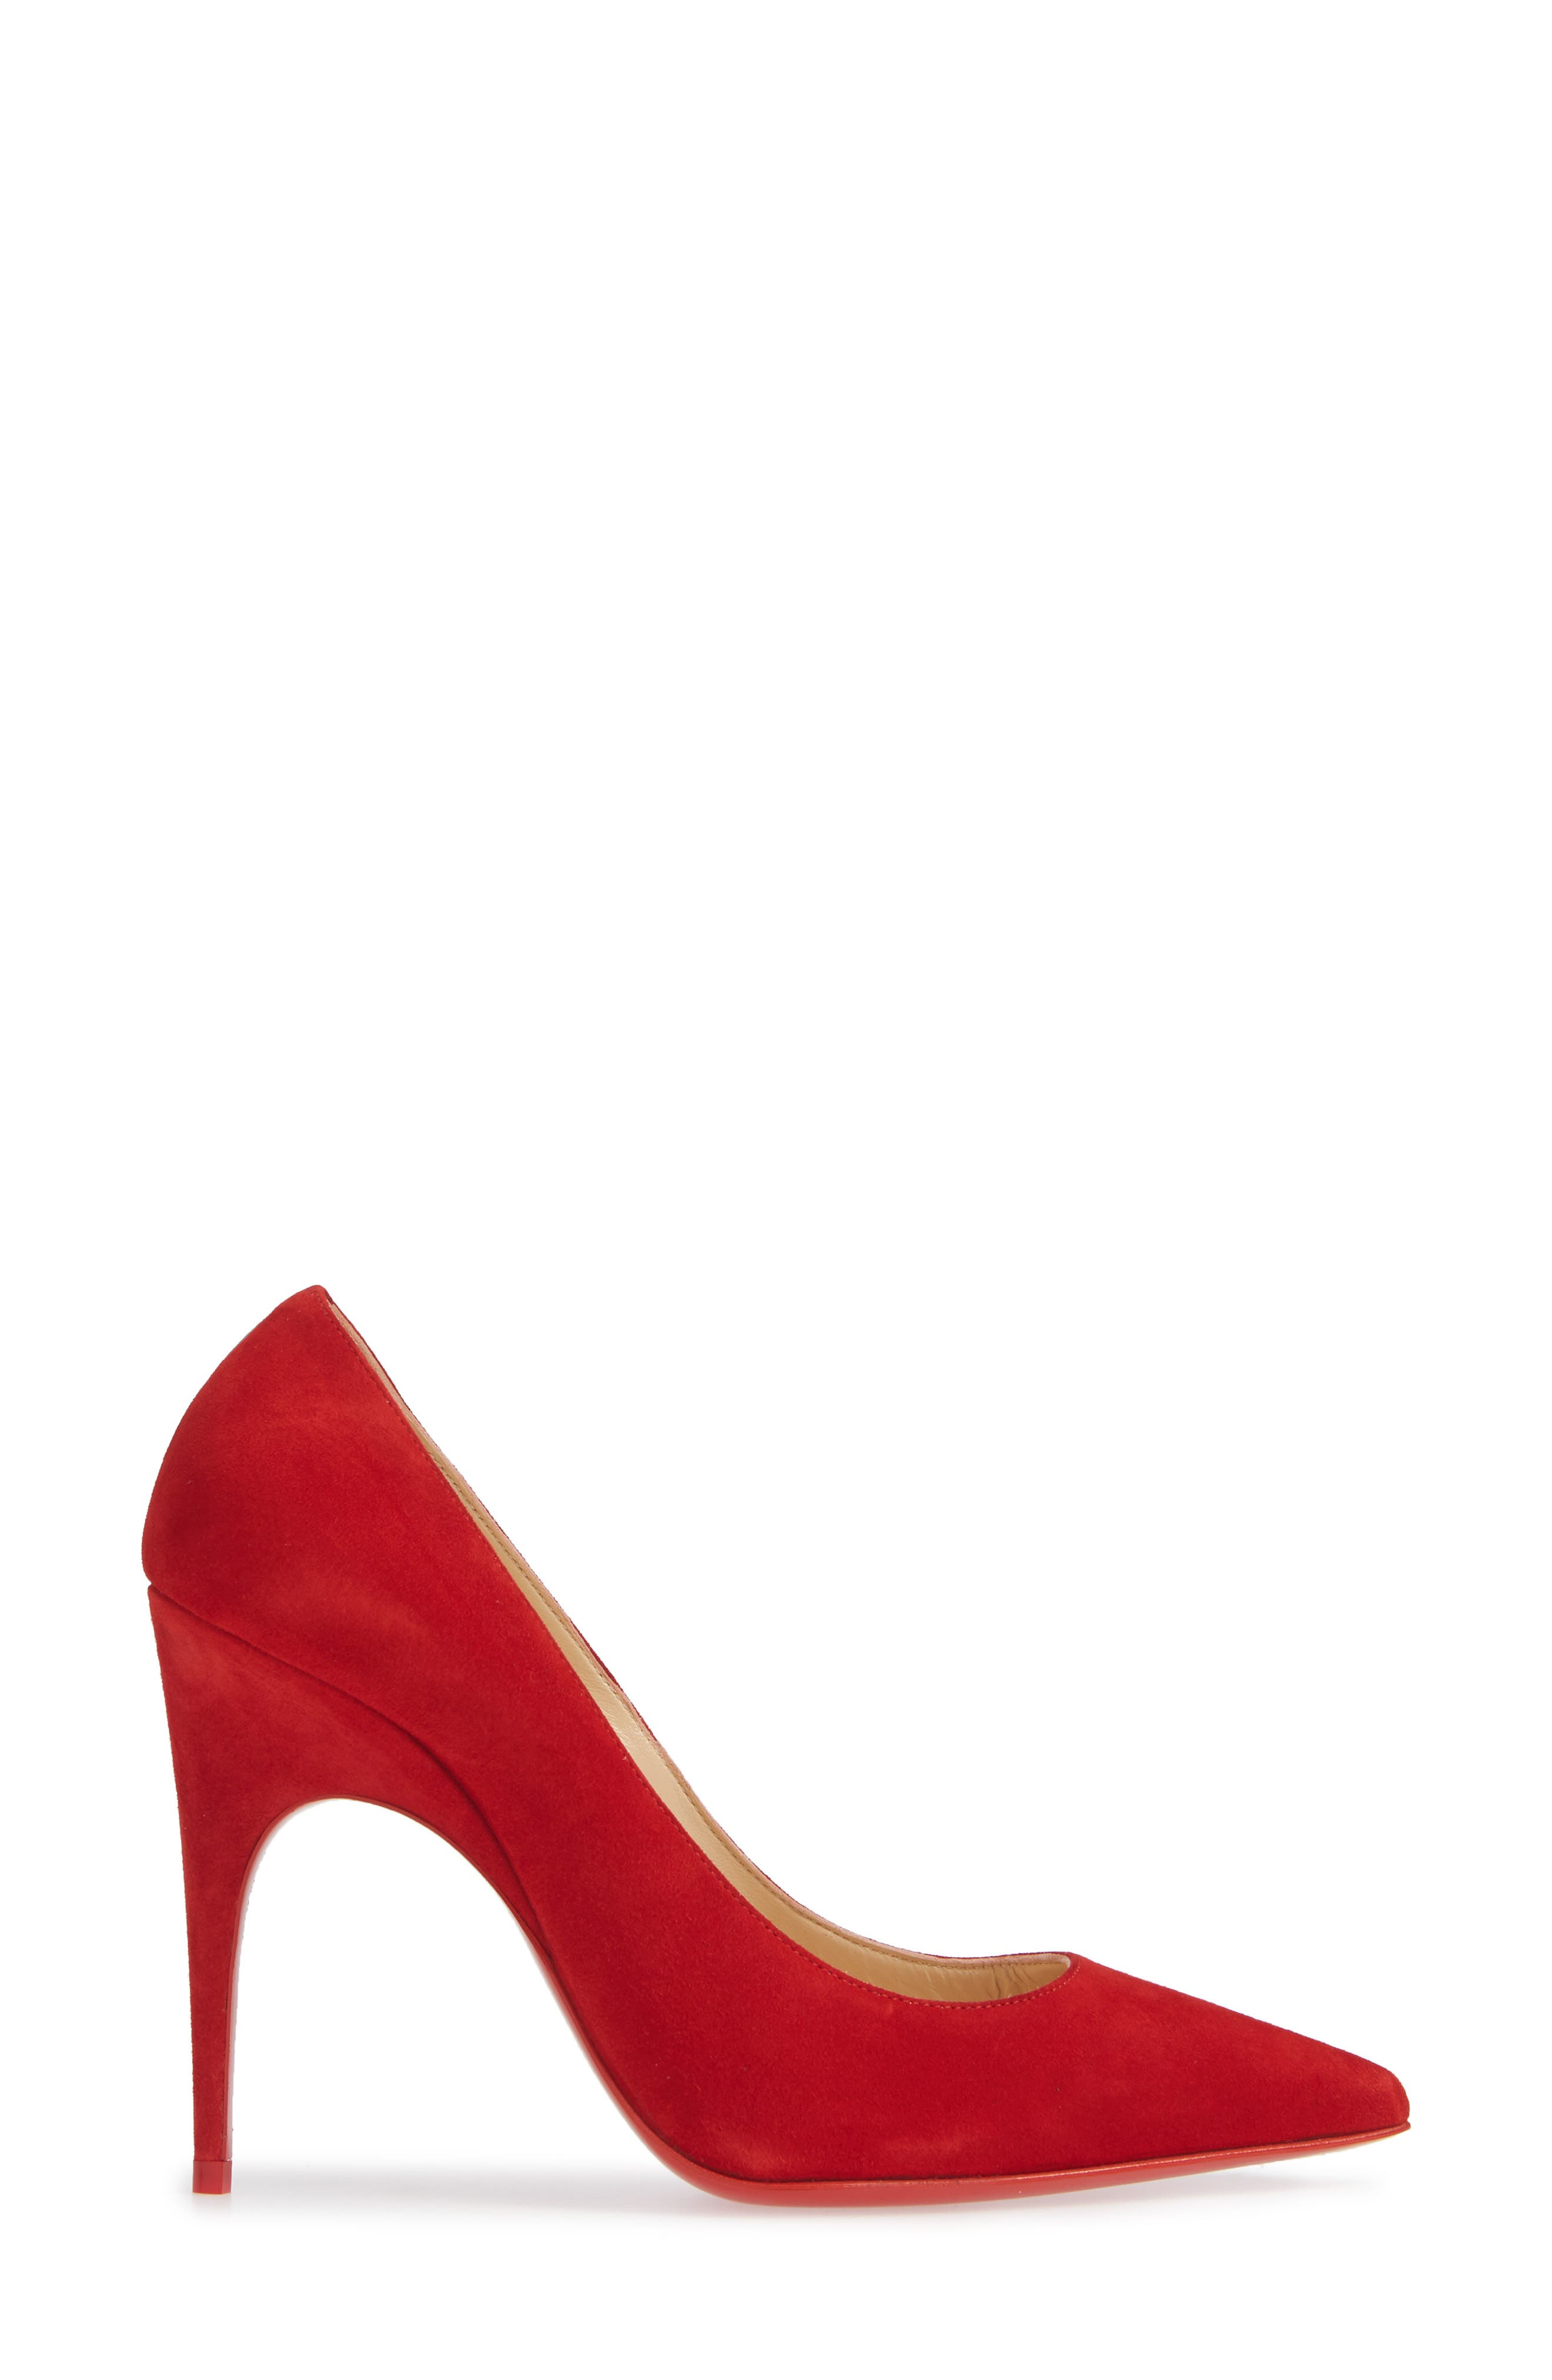 Alminette Pointy Toe Pump,                             Alternate thumbnail 3, color,                             LOUBI RED